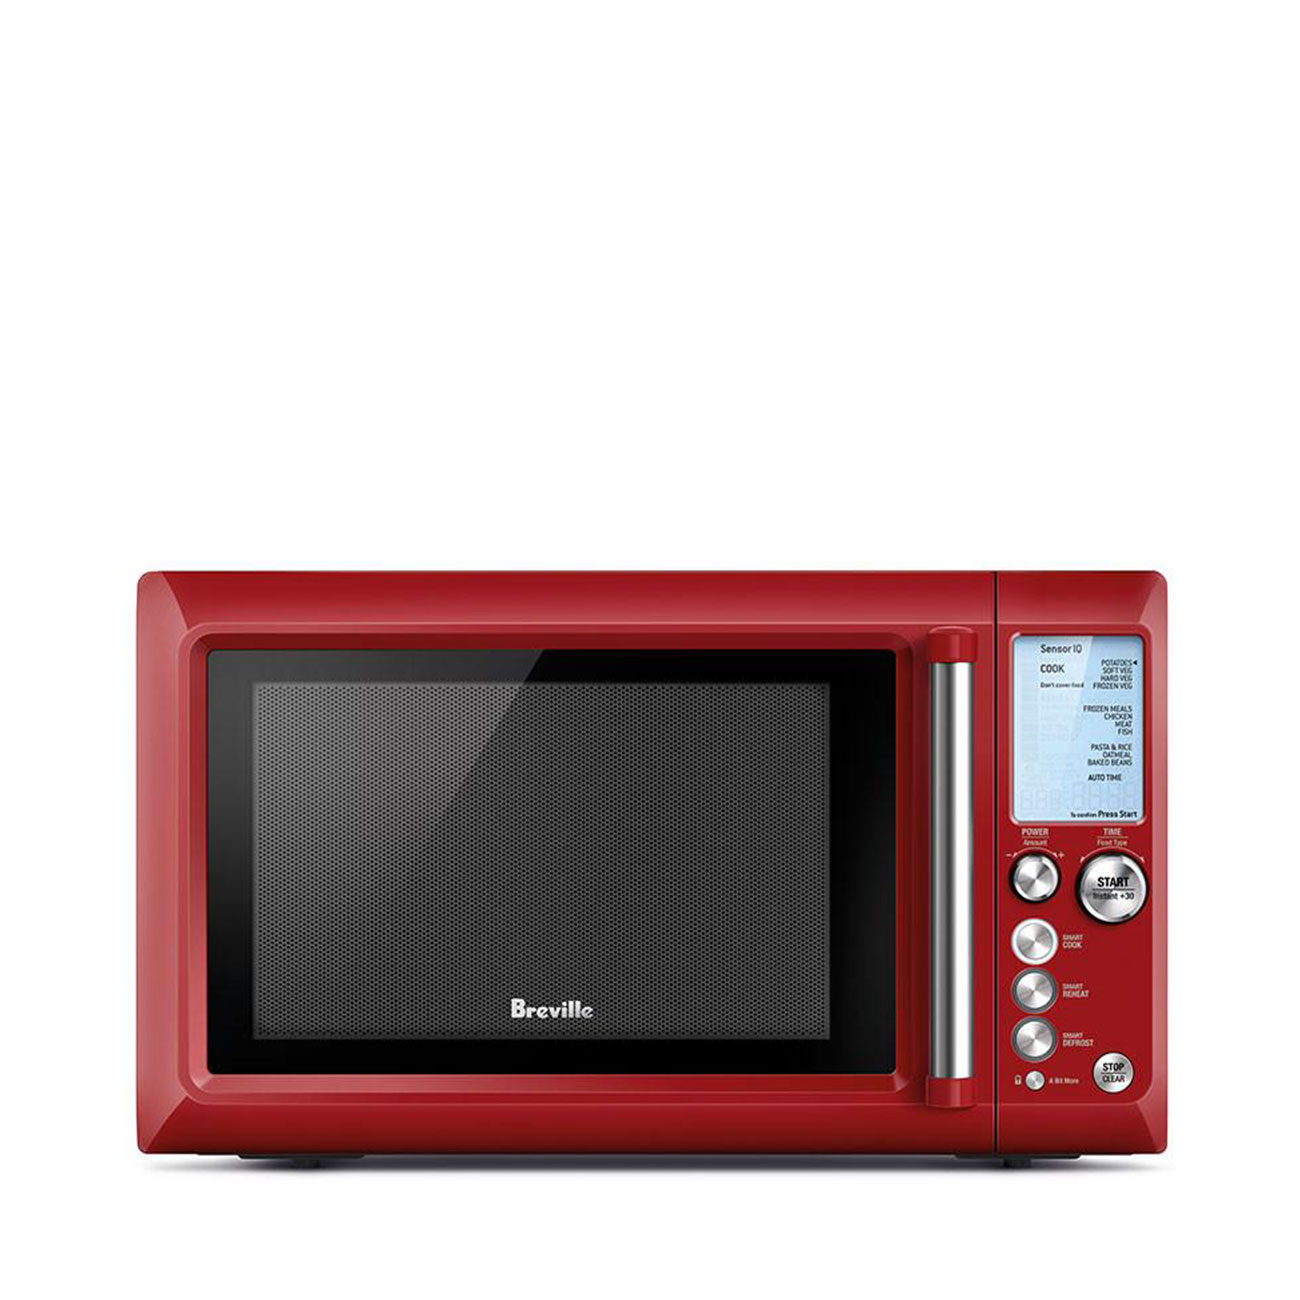 The Quick Touch Microwave Breville